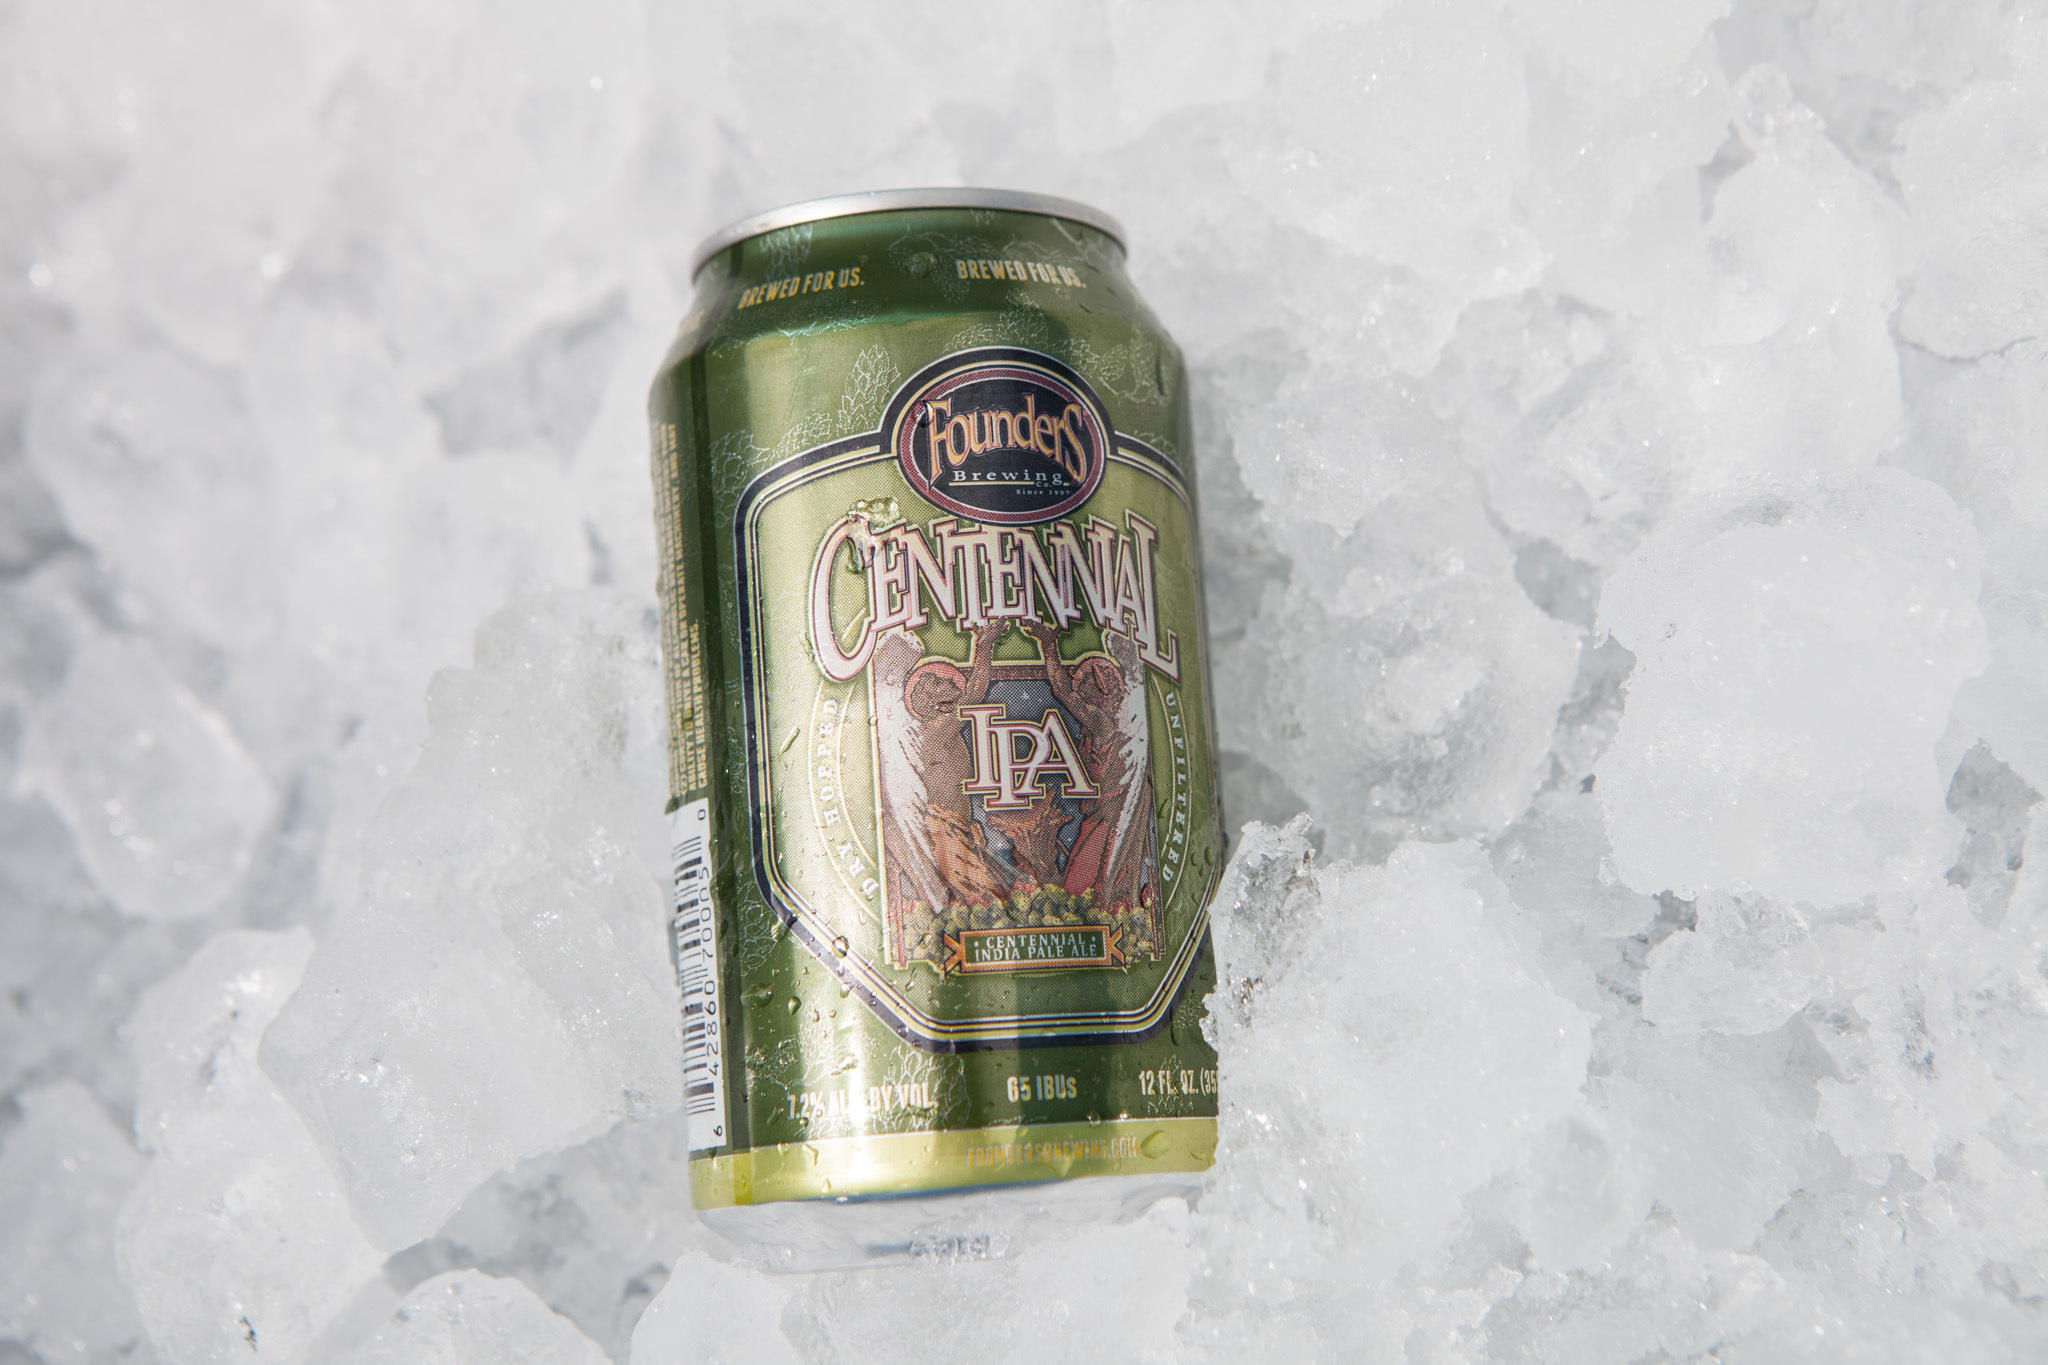 Founders Brewing Co.'s Centennial IPA